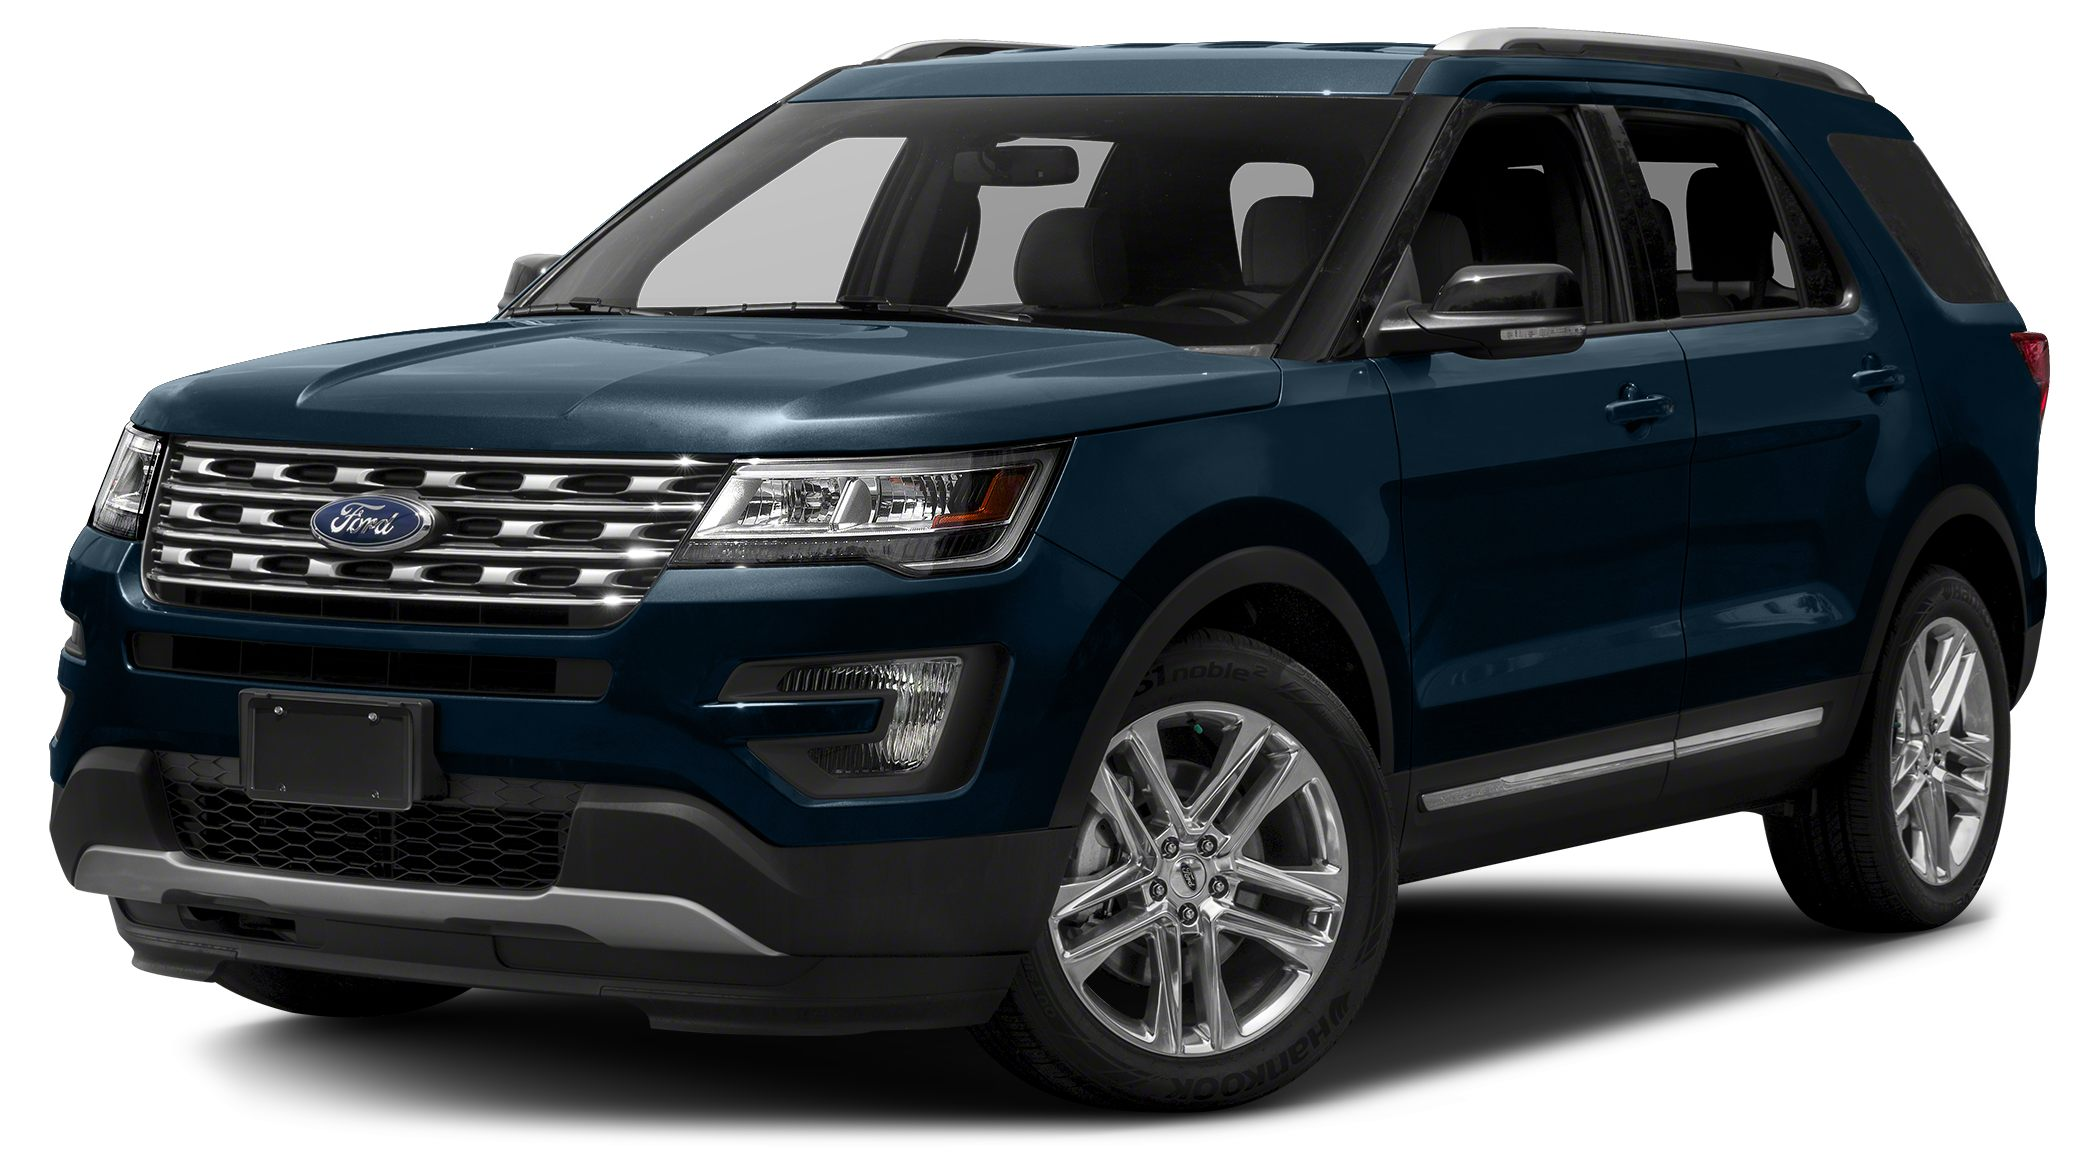 2016 Ford Explorer XLT Check out this 2016 Both practical and stylish Top features include cruis